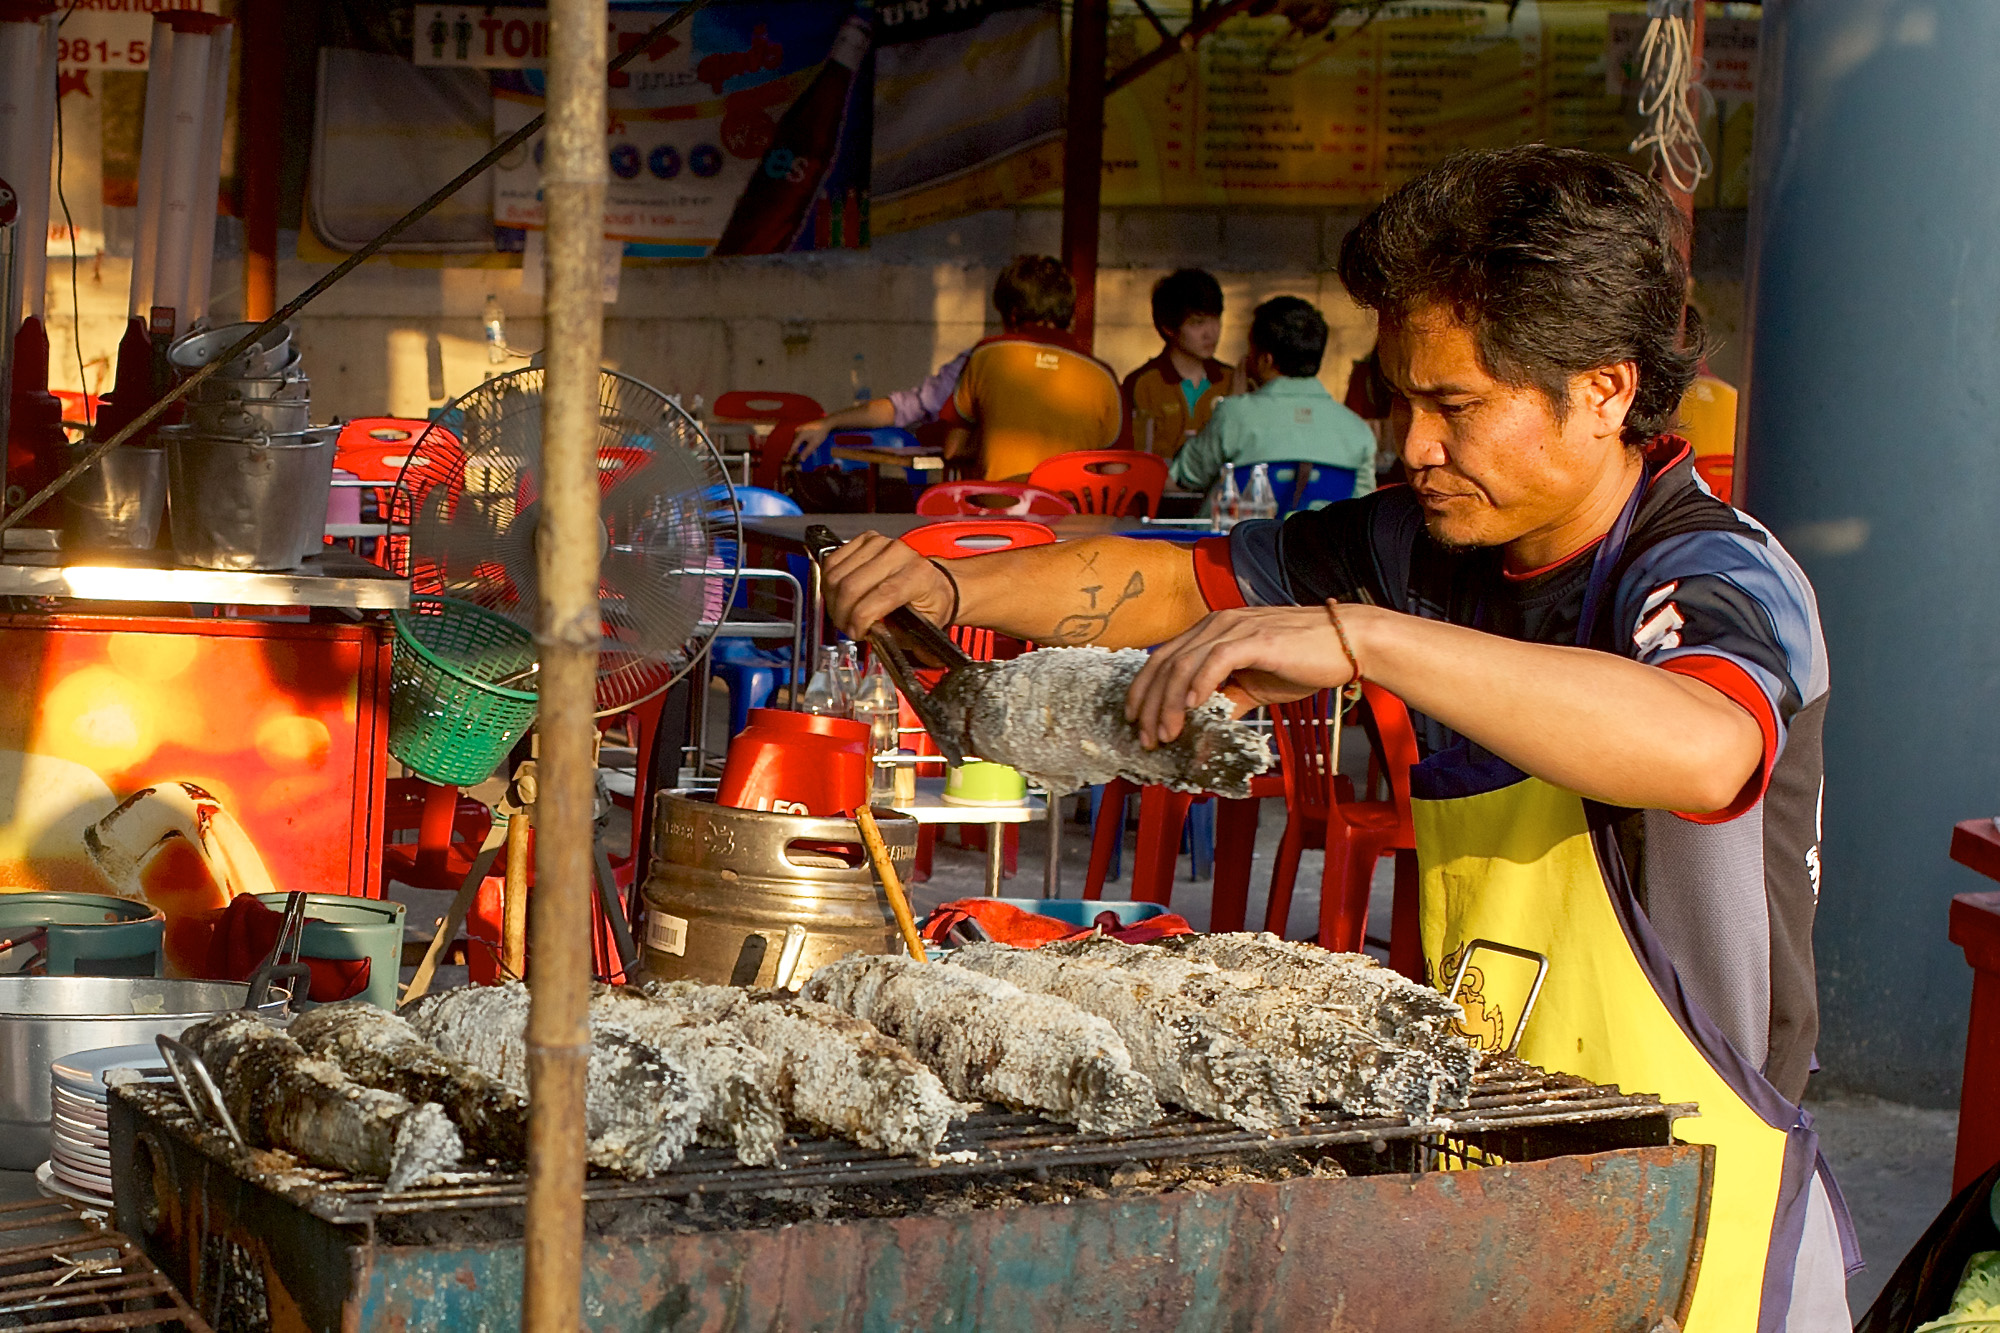 Man cooking fish in golden sunlight